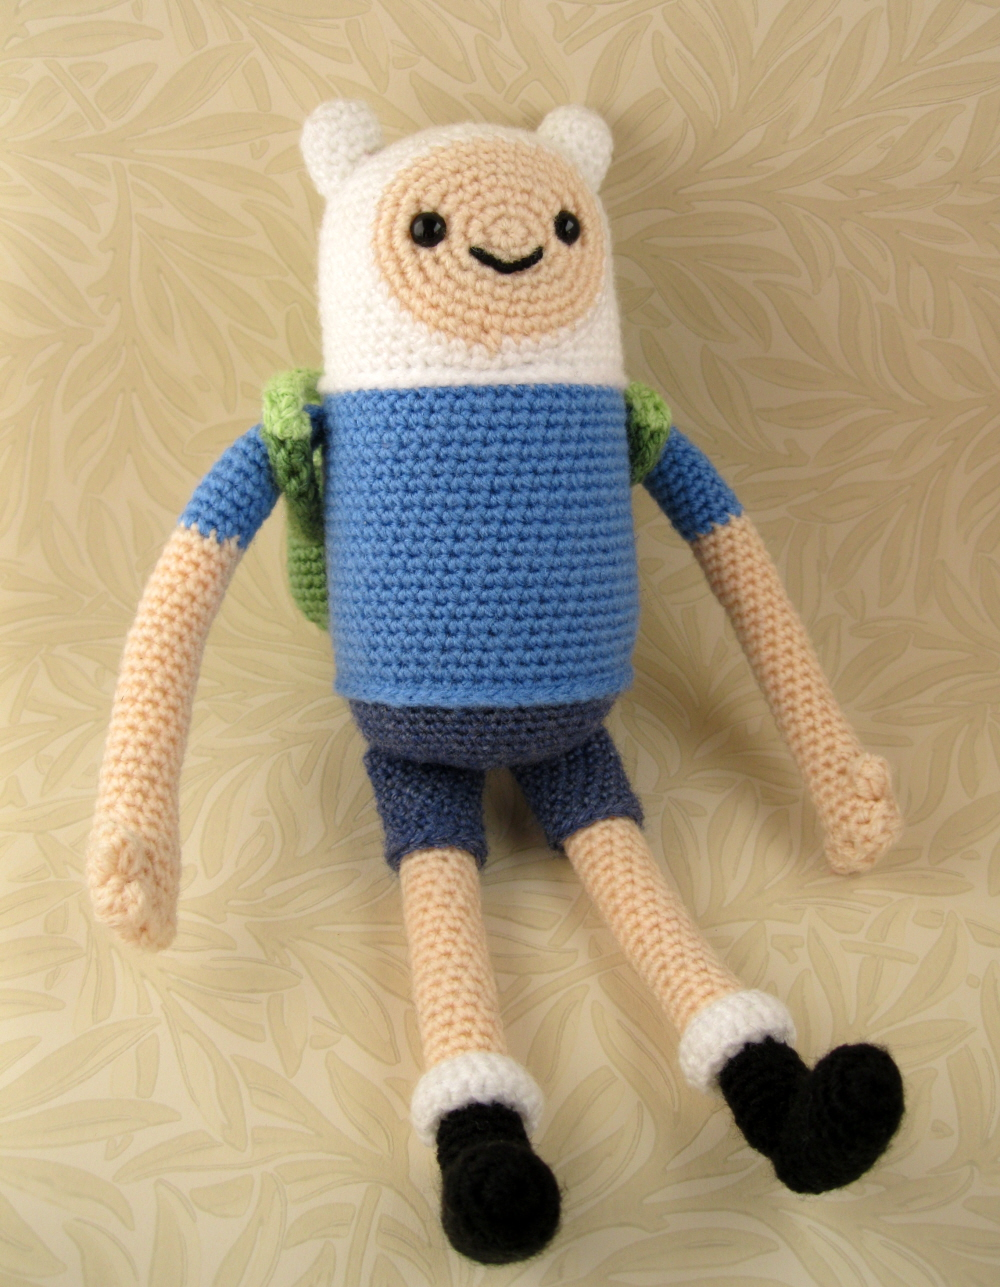 Adventure Time Jake Amigurumi Pattern : LucyRavenscar - Crochet Creatures: Adventure Time with ...